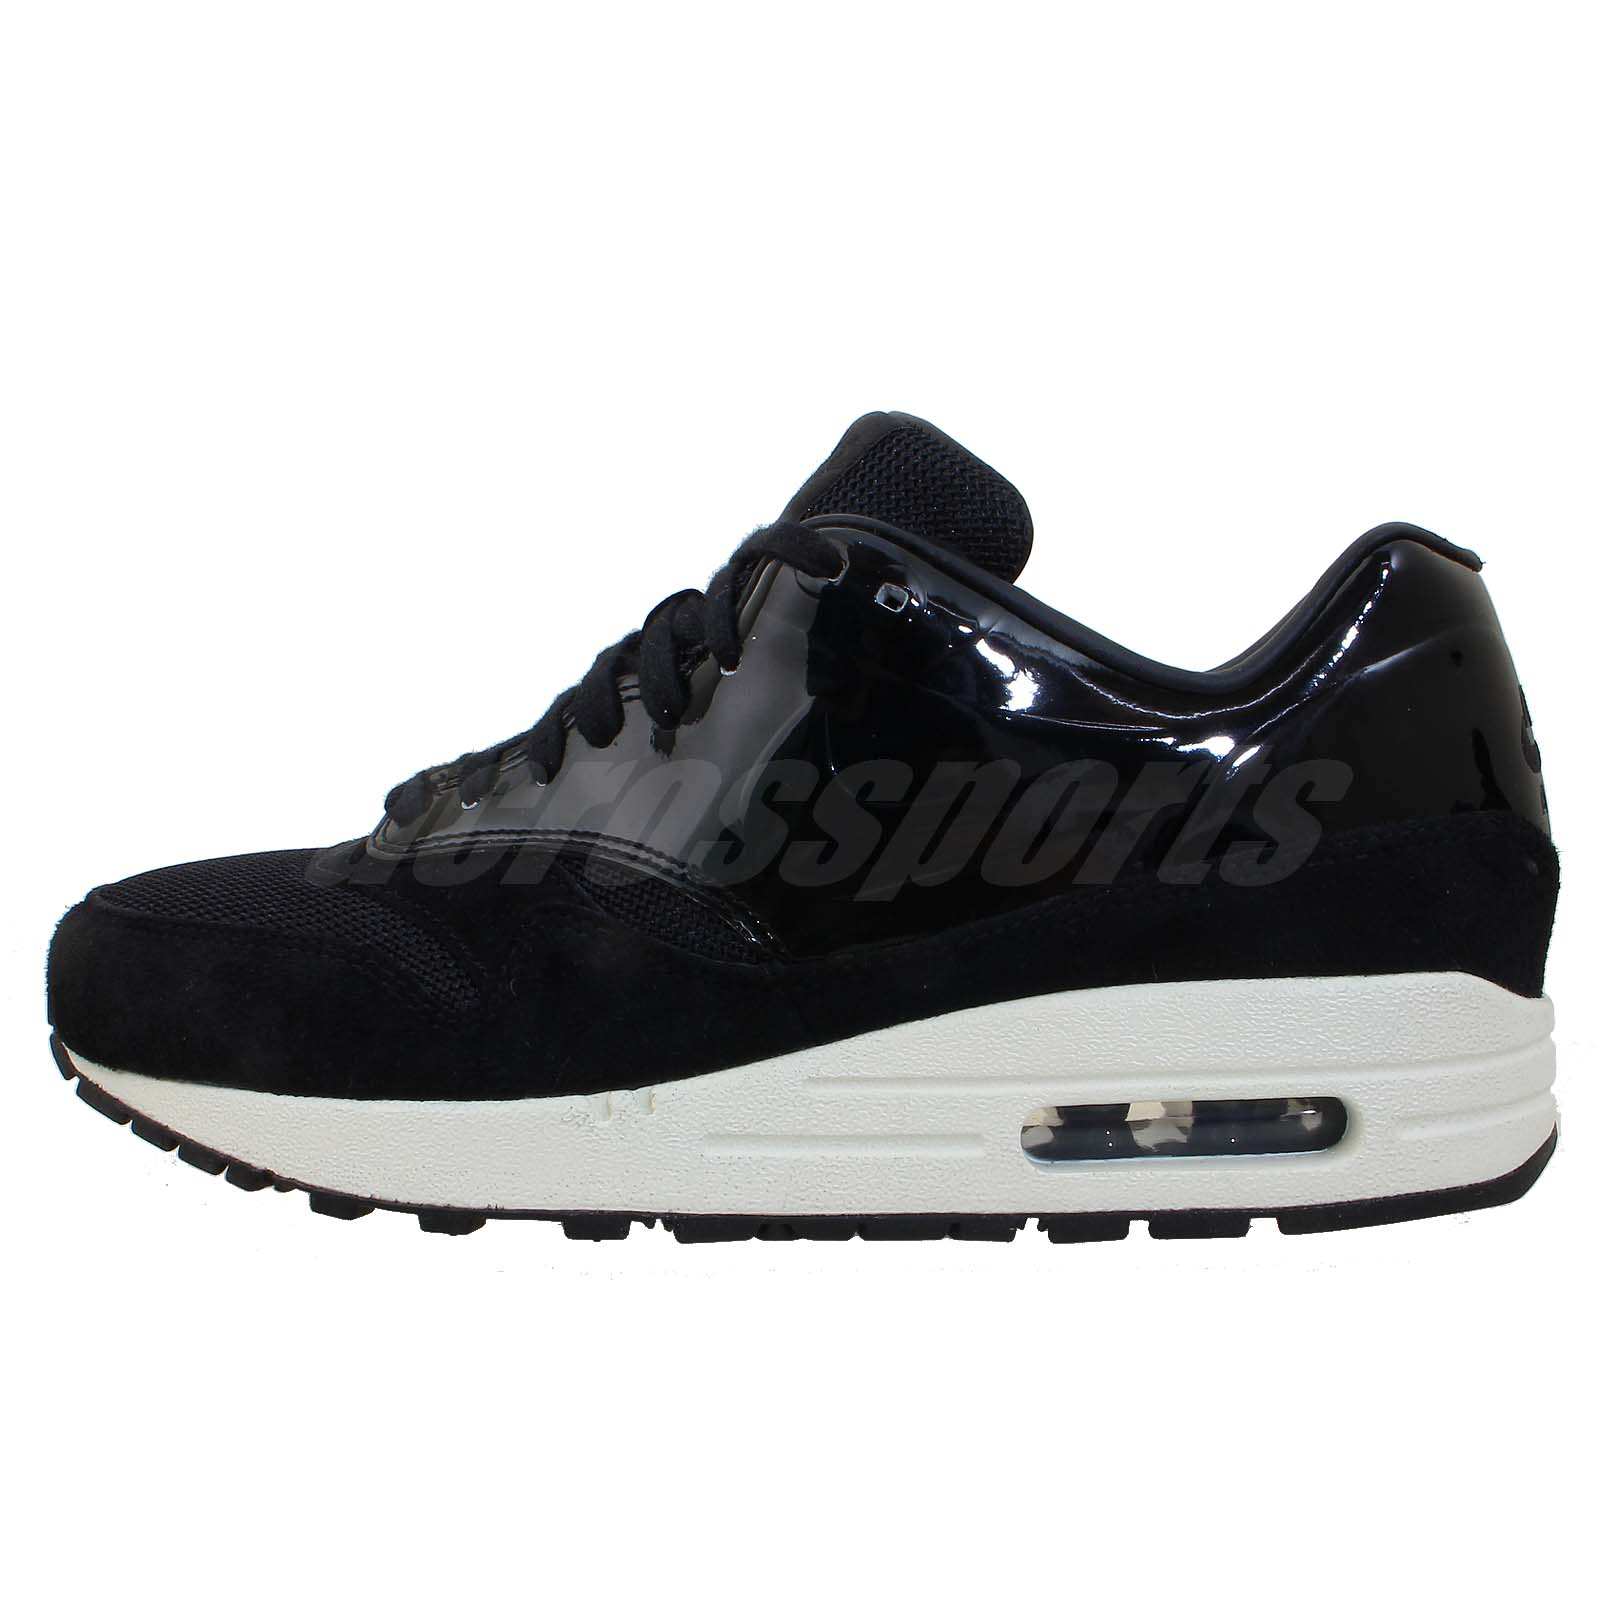 Nike Wmns Air Max 1 VT QS Black Patent Womens Running Shoes 90 Limited Edition   eBay